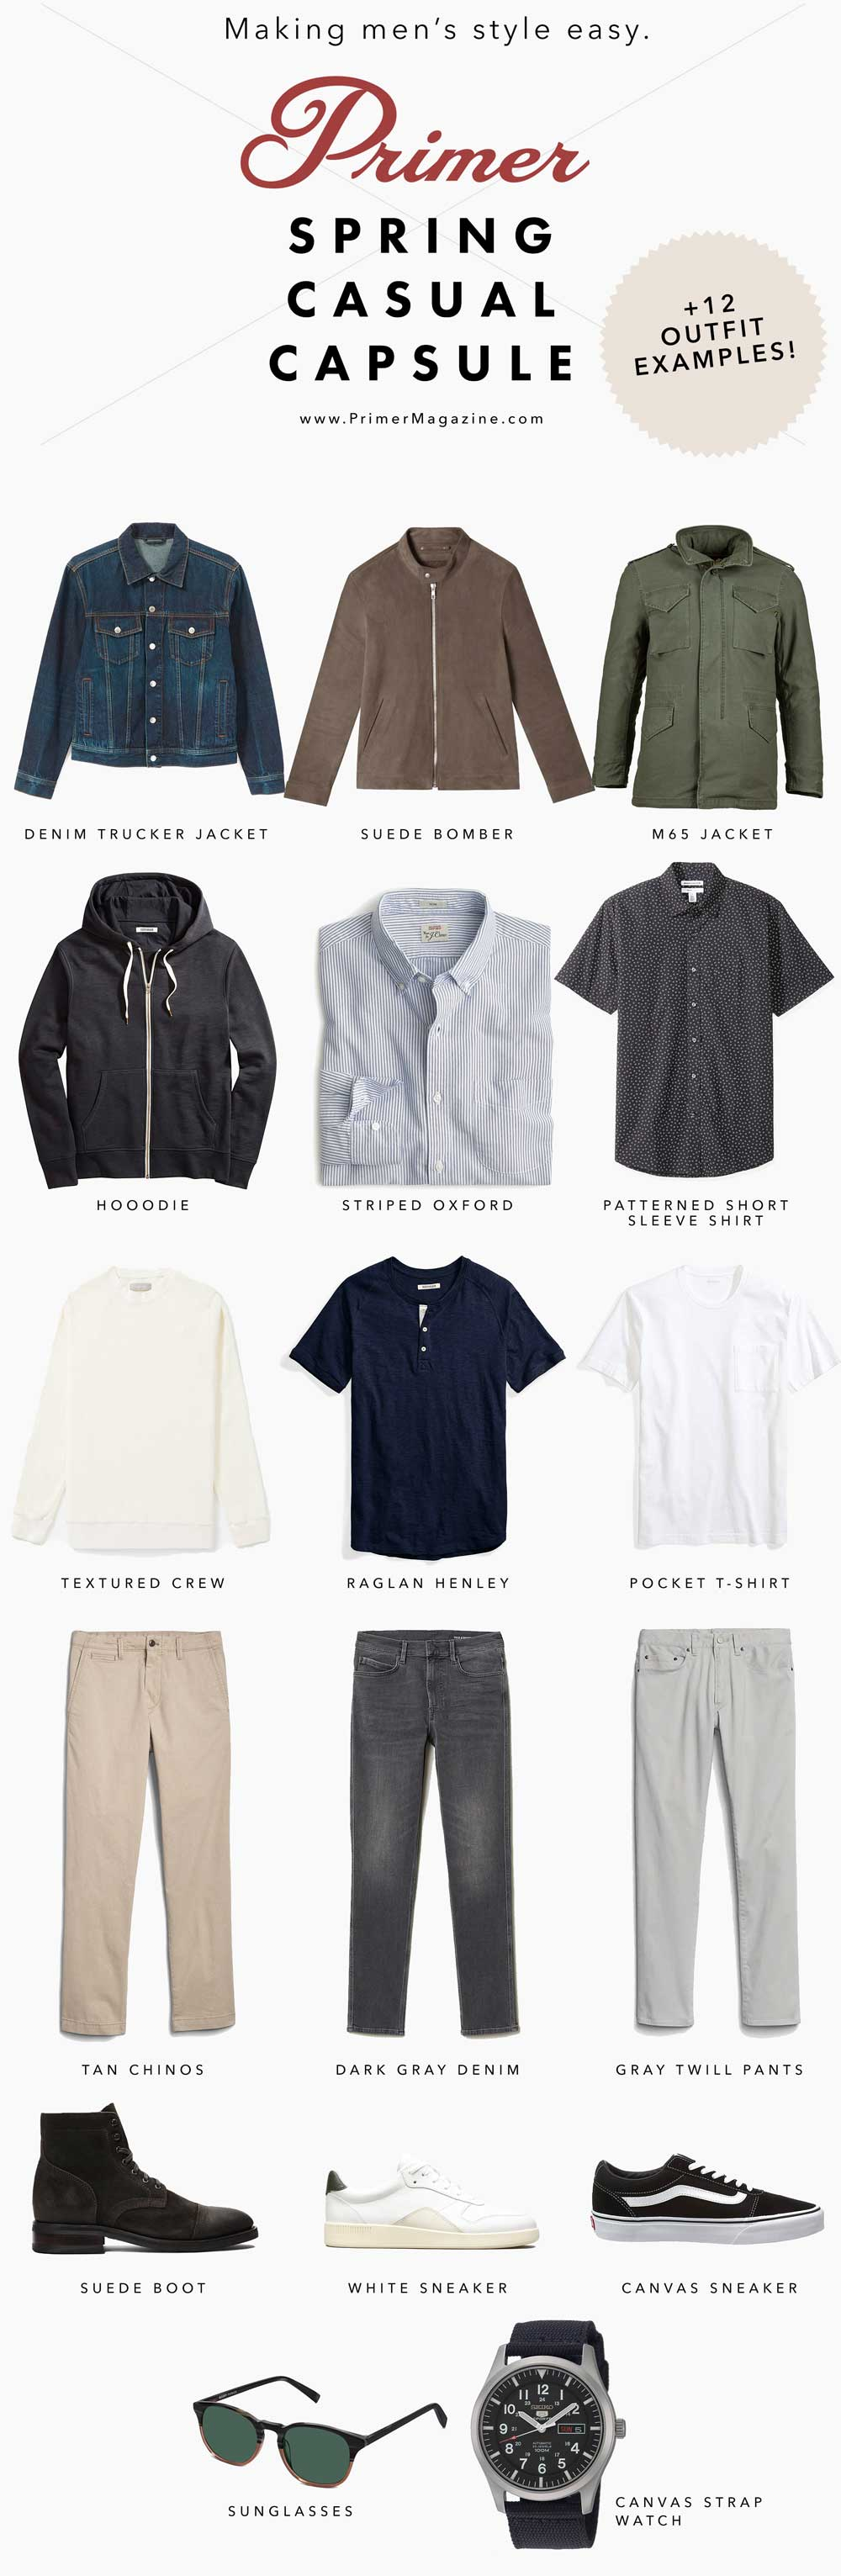 men casual spring style outfit ideas - capsule wardrobe men